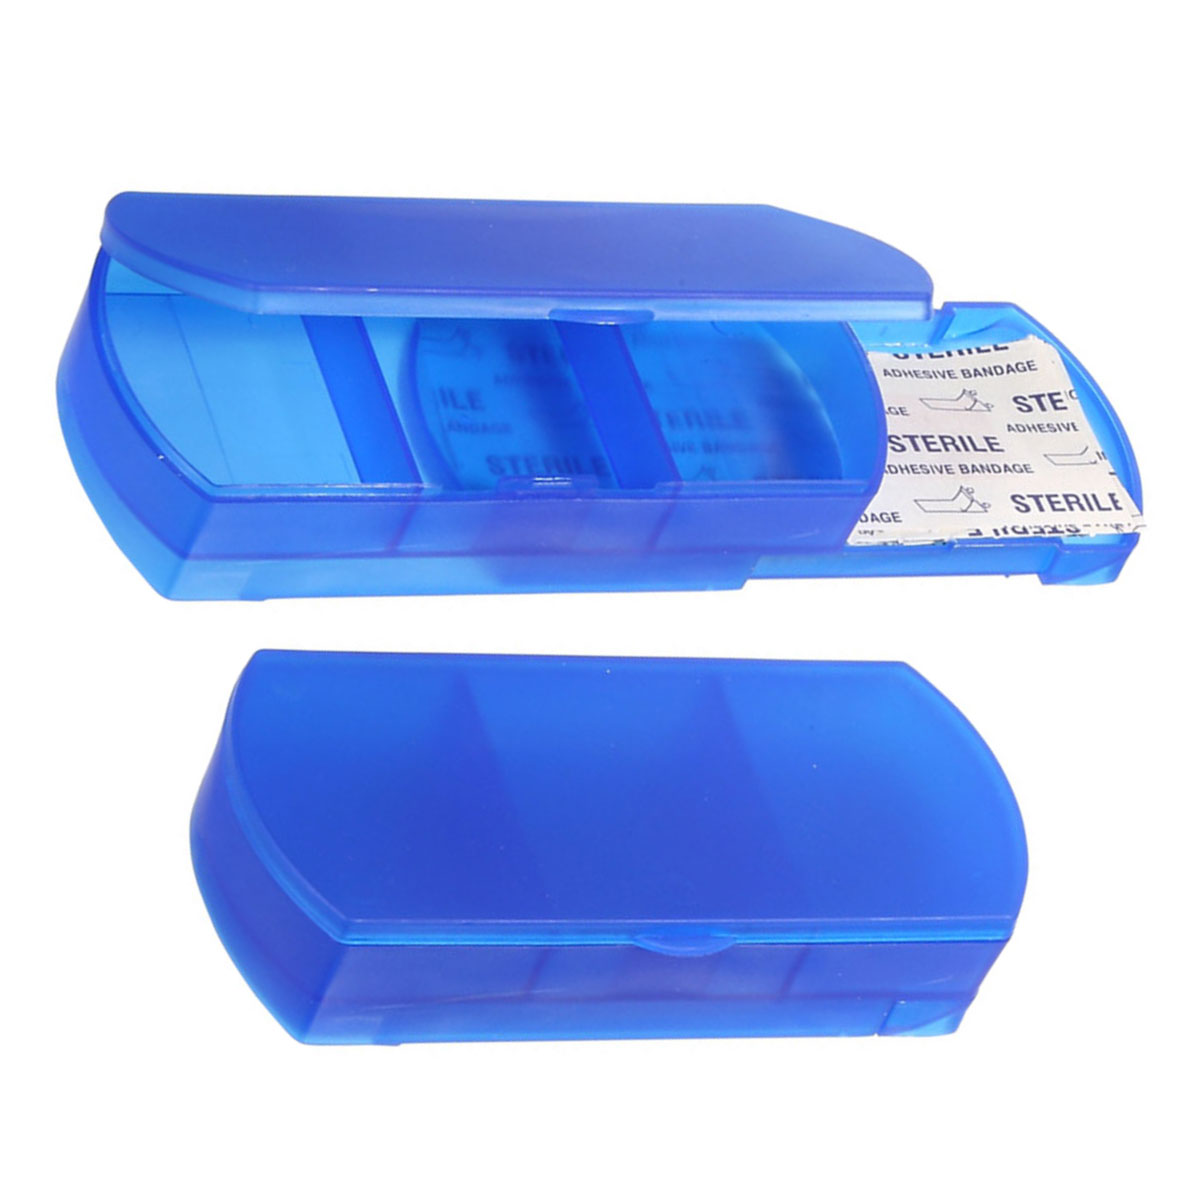 Blue Bandage Holder and Pillbox